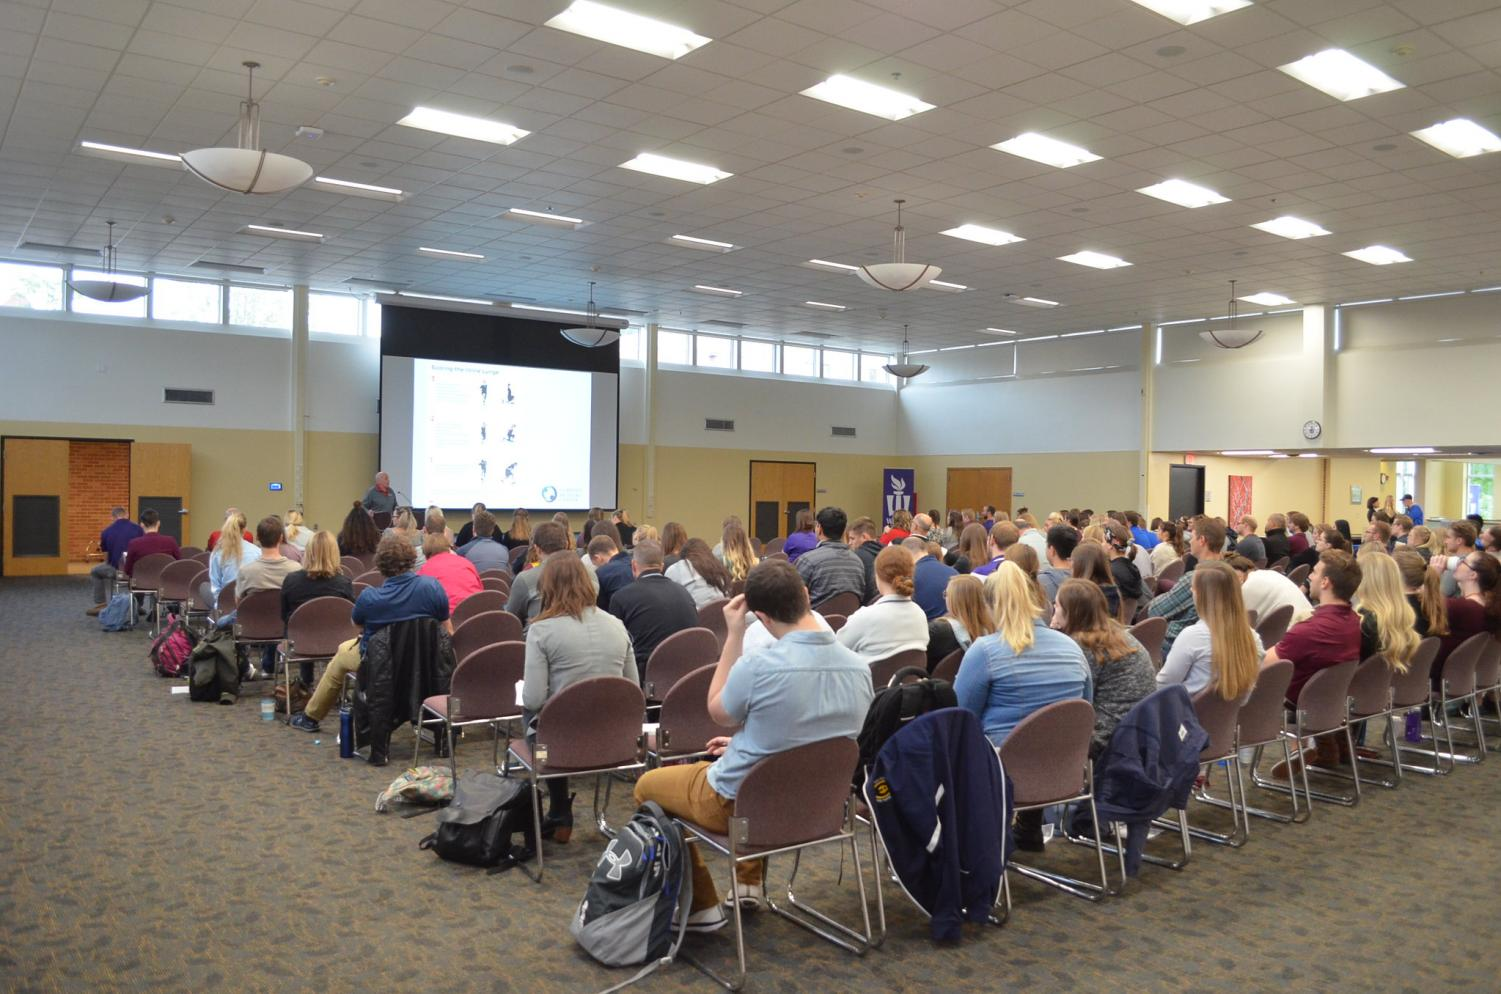 Undergraduate and graduate students from Minnesota, Nebraska, North Dakota and South Dakota attended the Northland American College of Sports Medicine fall conference on Oct. 3 - 4 in East Room. The conference included presentations, exhibits and meet and greets with experts in different medical fields related to sports medicine.